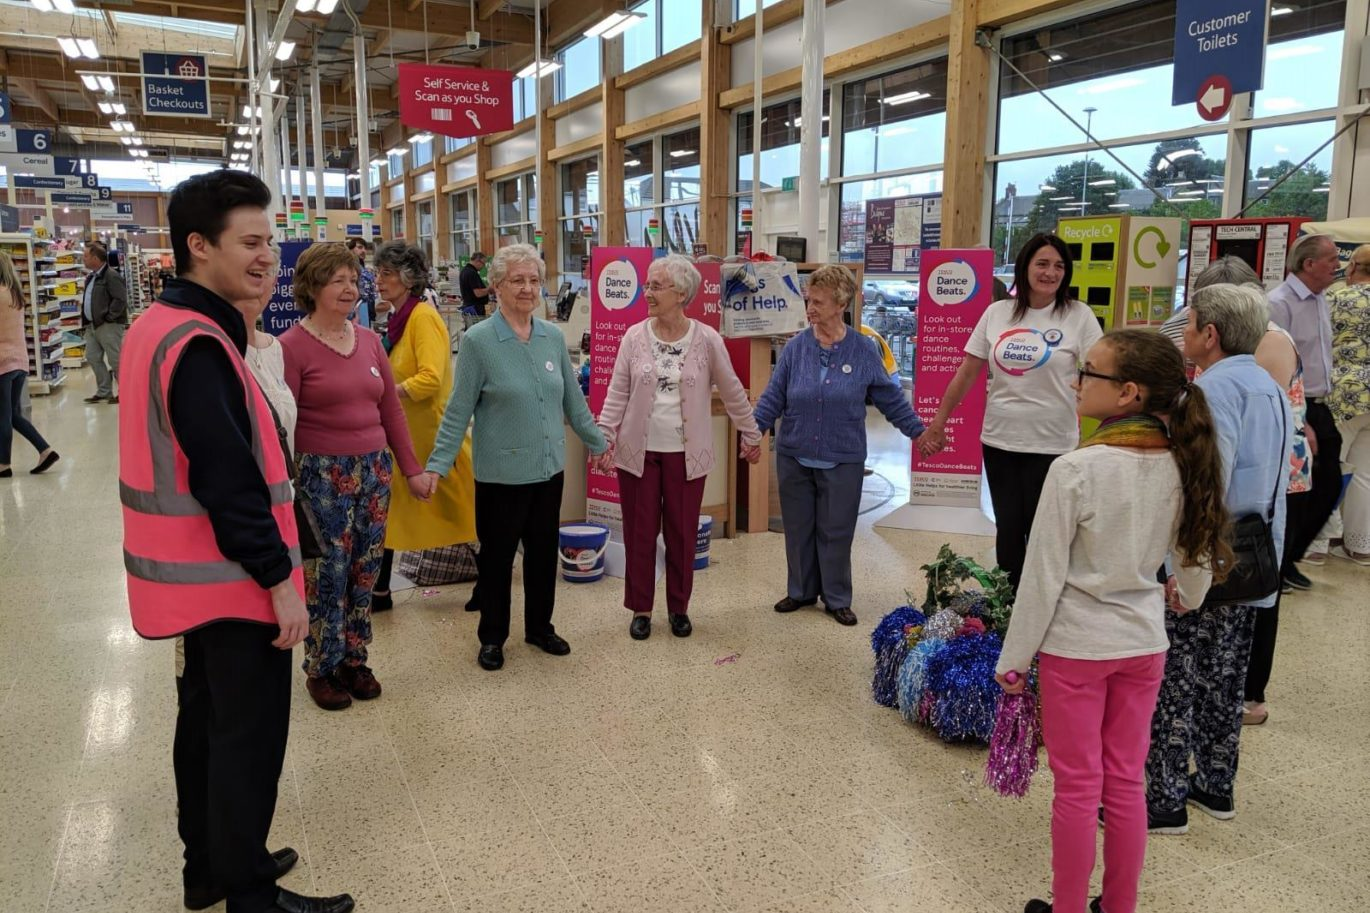 Tesco Dancebeats July 2019 - CDFA took part in the Tesco charity event Dancebeats